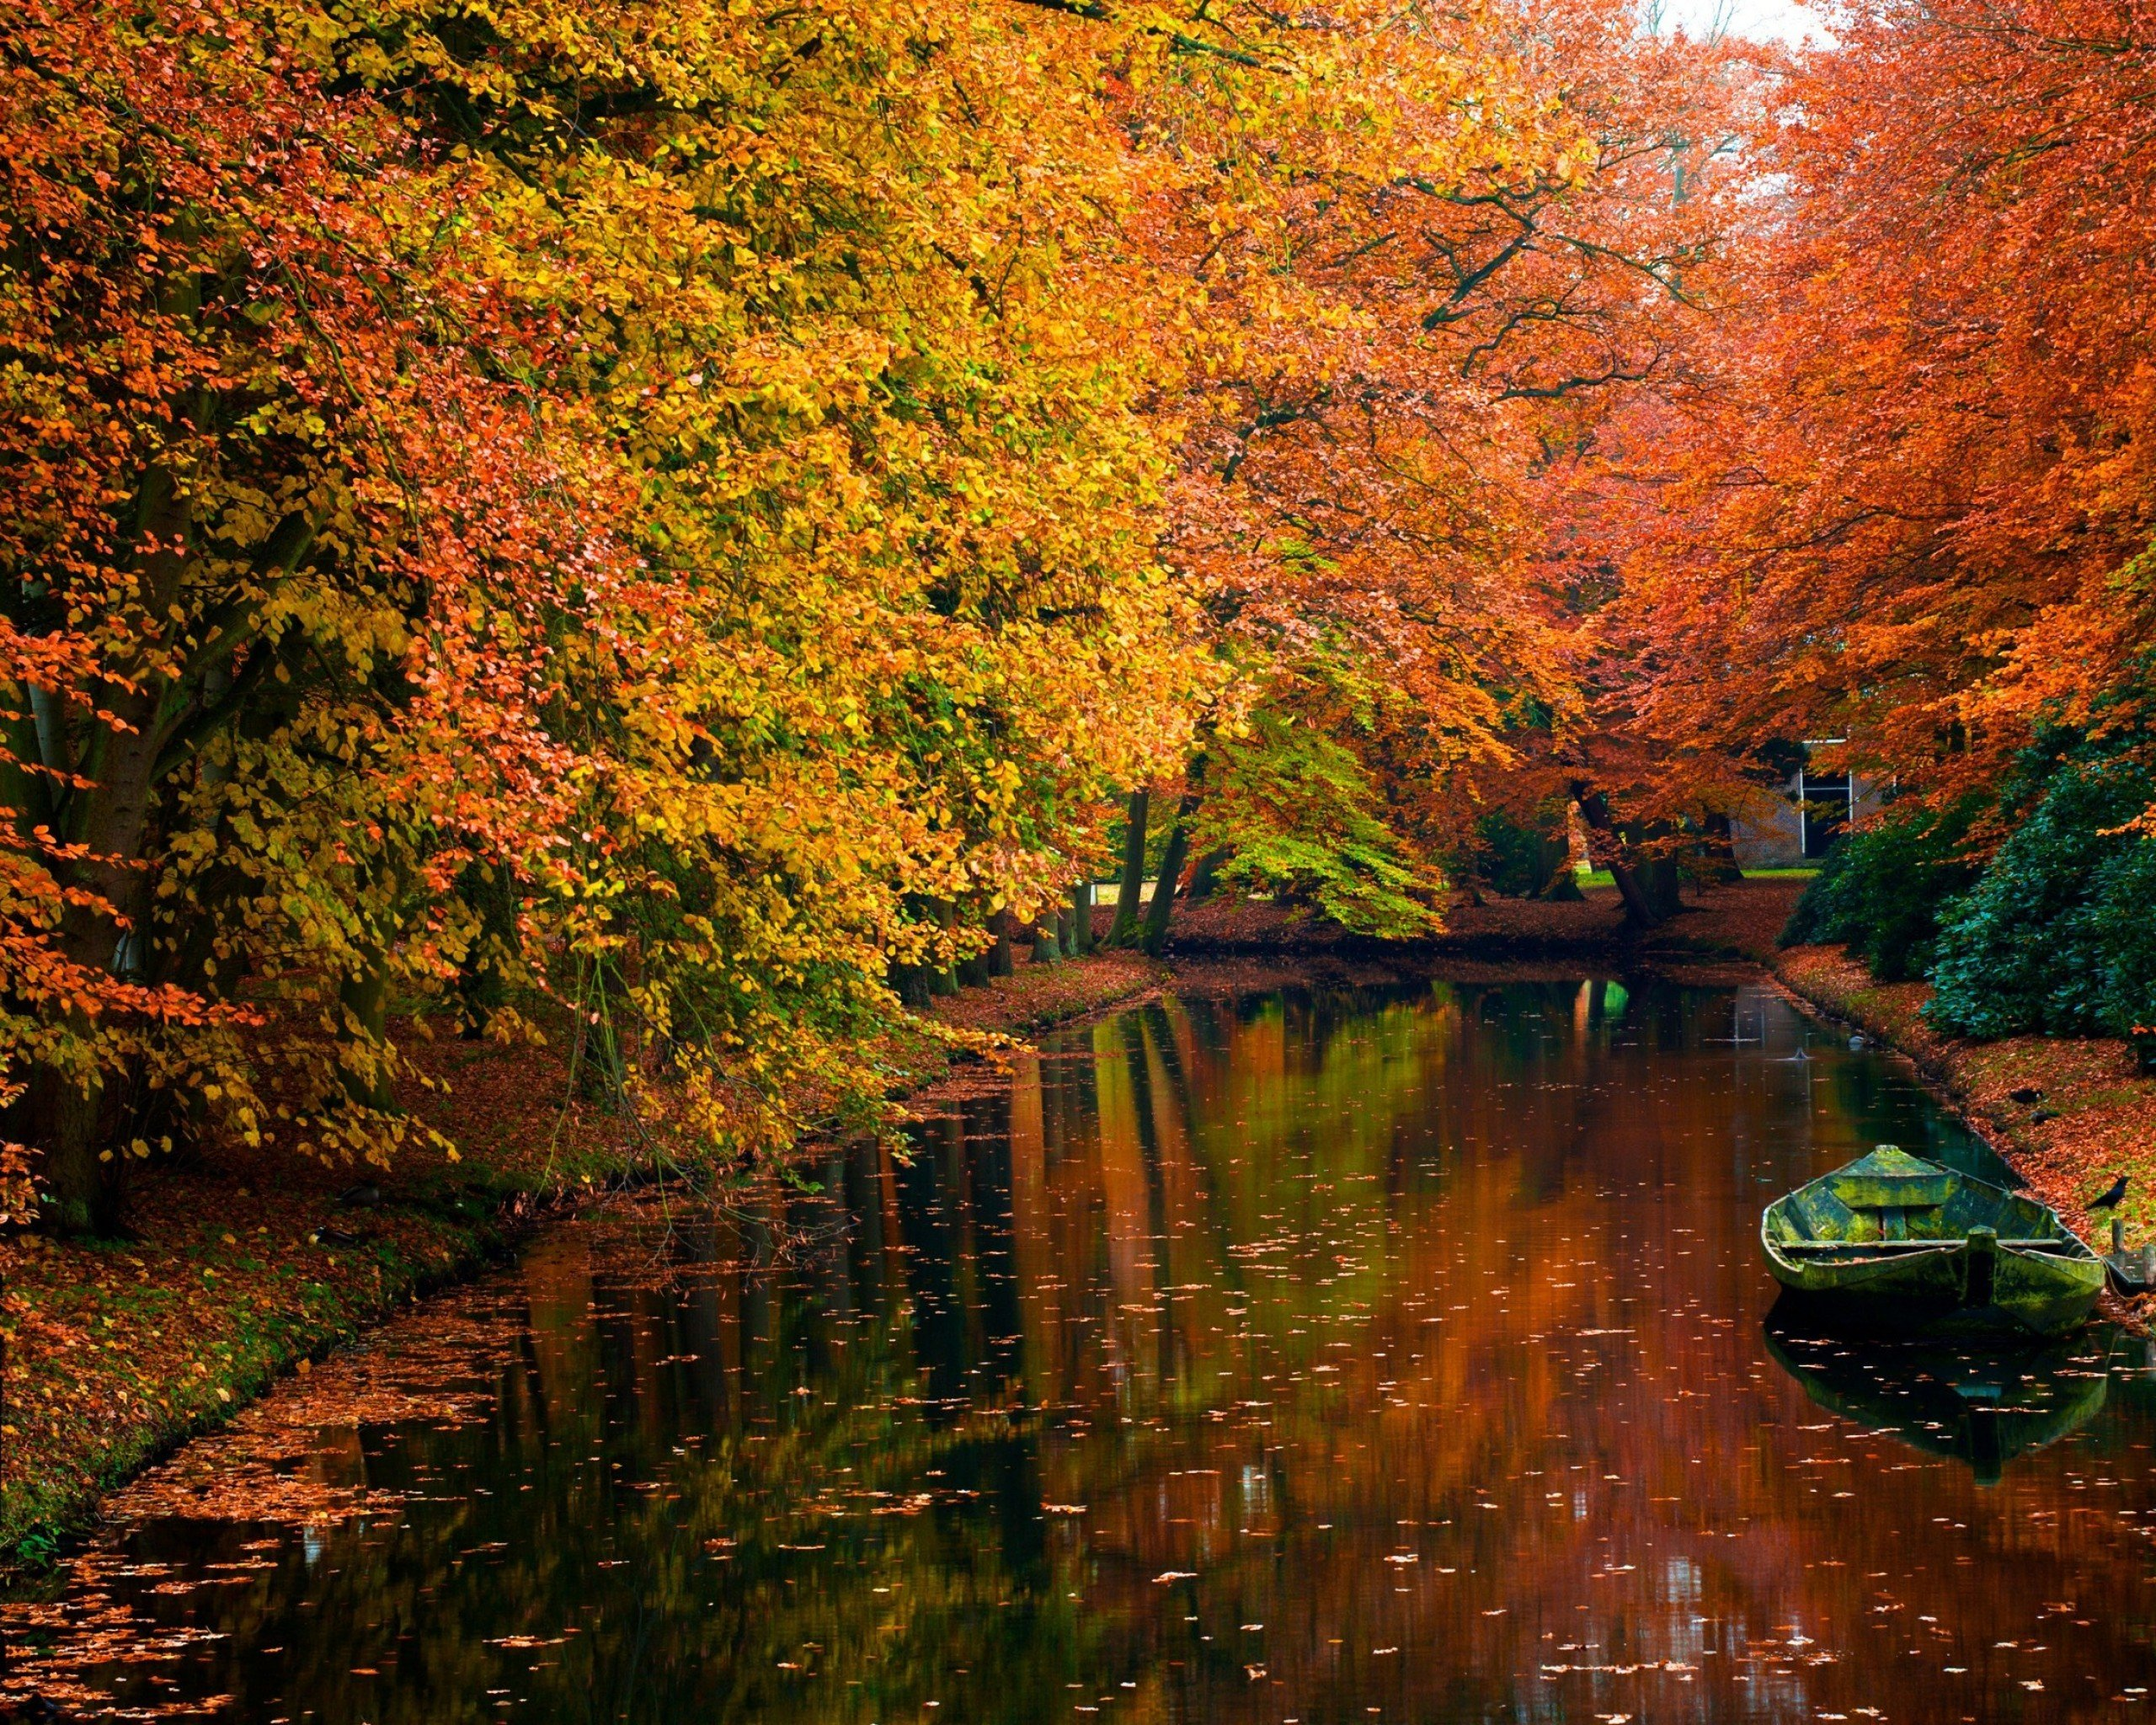 autumn landscape android nature colors leaves trees local fall tree autum leaf hd backgrounds desktop wallpapers autumnal computer wall offer